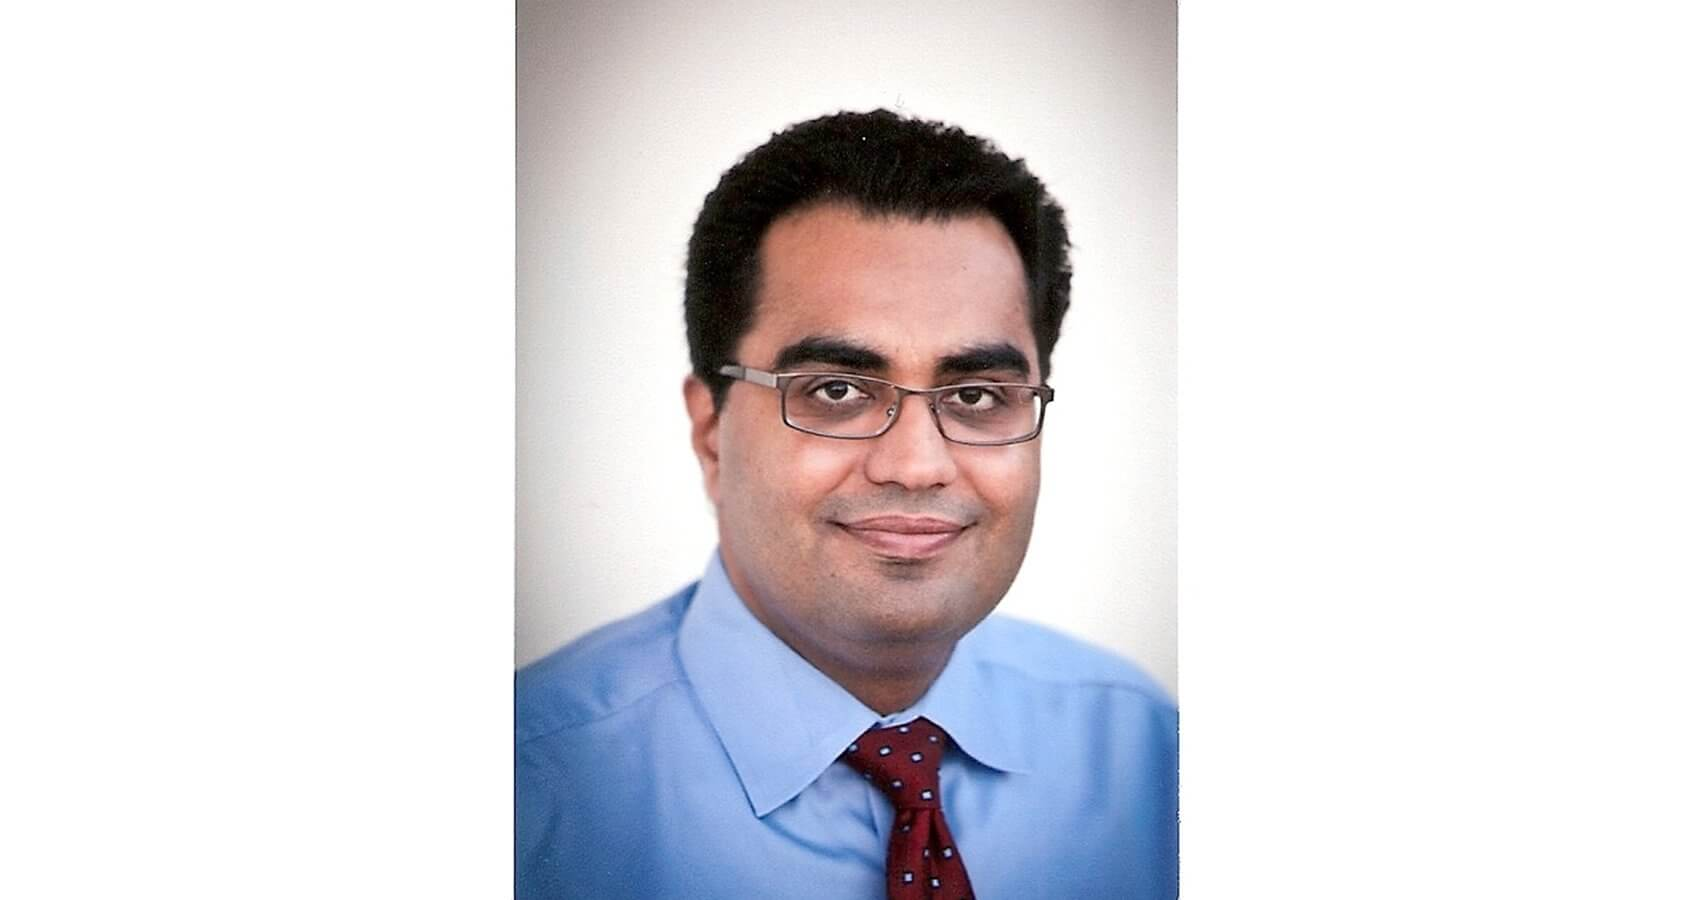 Gurinder Singh, fellow in the UTMB department of internal medicine, division of pulmonary critical care and sleep medicine.